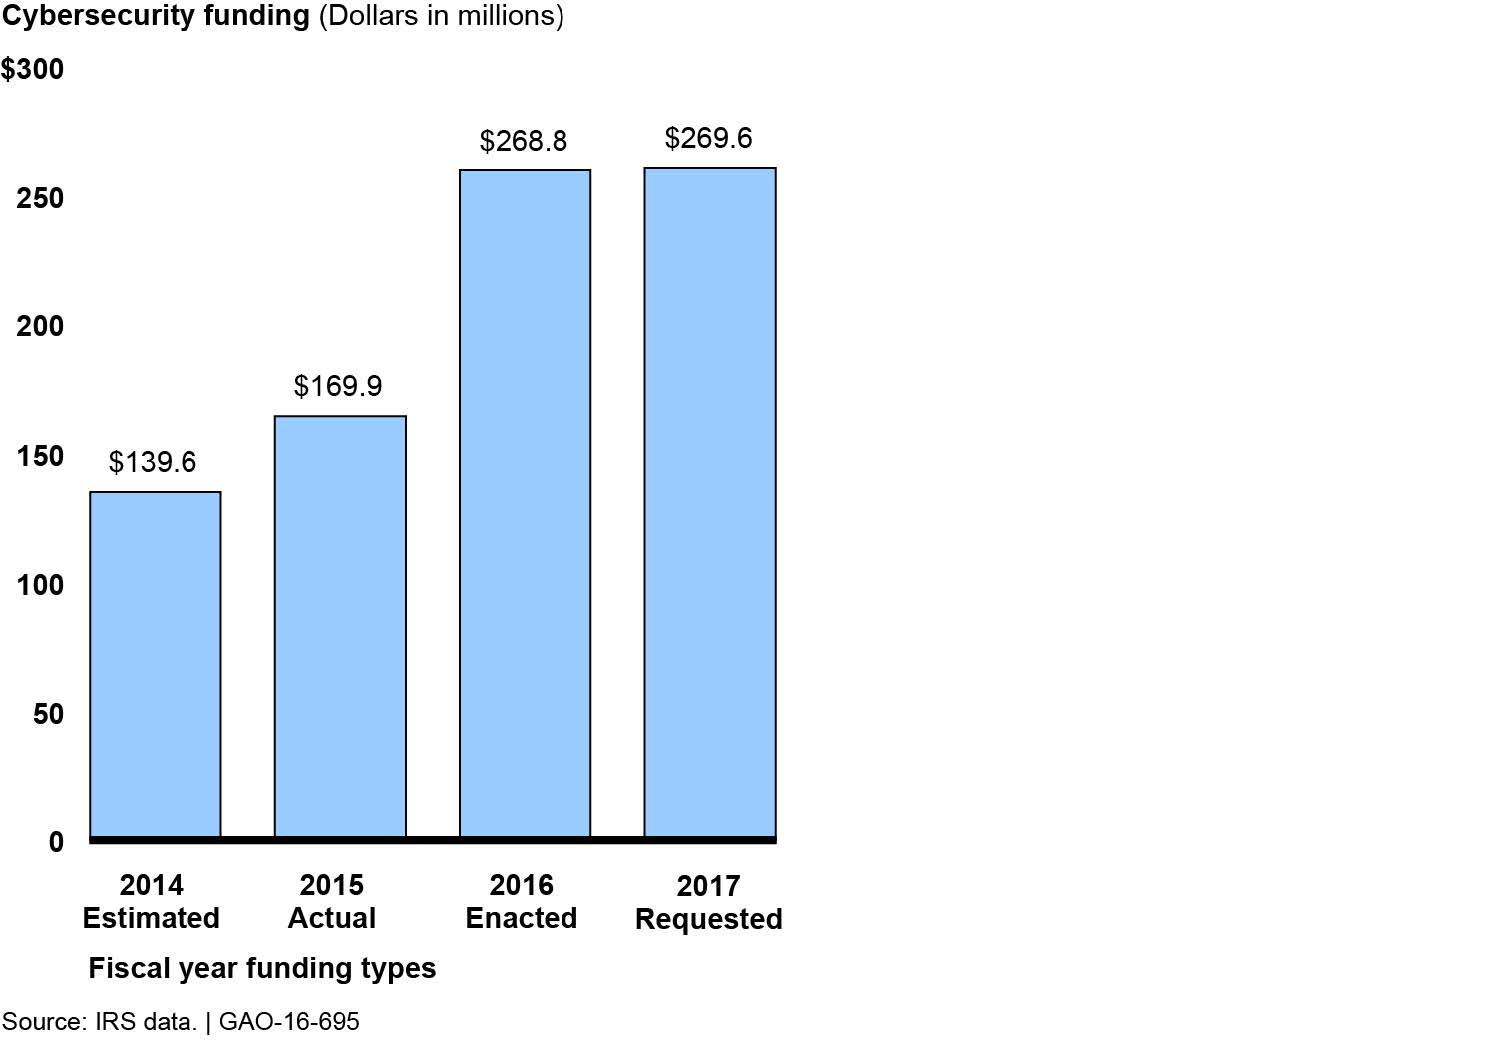 Figure 1- Cybersecurity Funding at IRS, Fiscal Years 2014 Estimated, 2015 Actual, 2016 Enacted, and 2017 Requested (Dollars in Millions) (28979530692).jpg